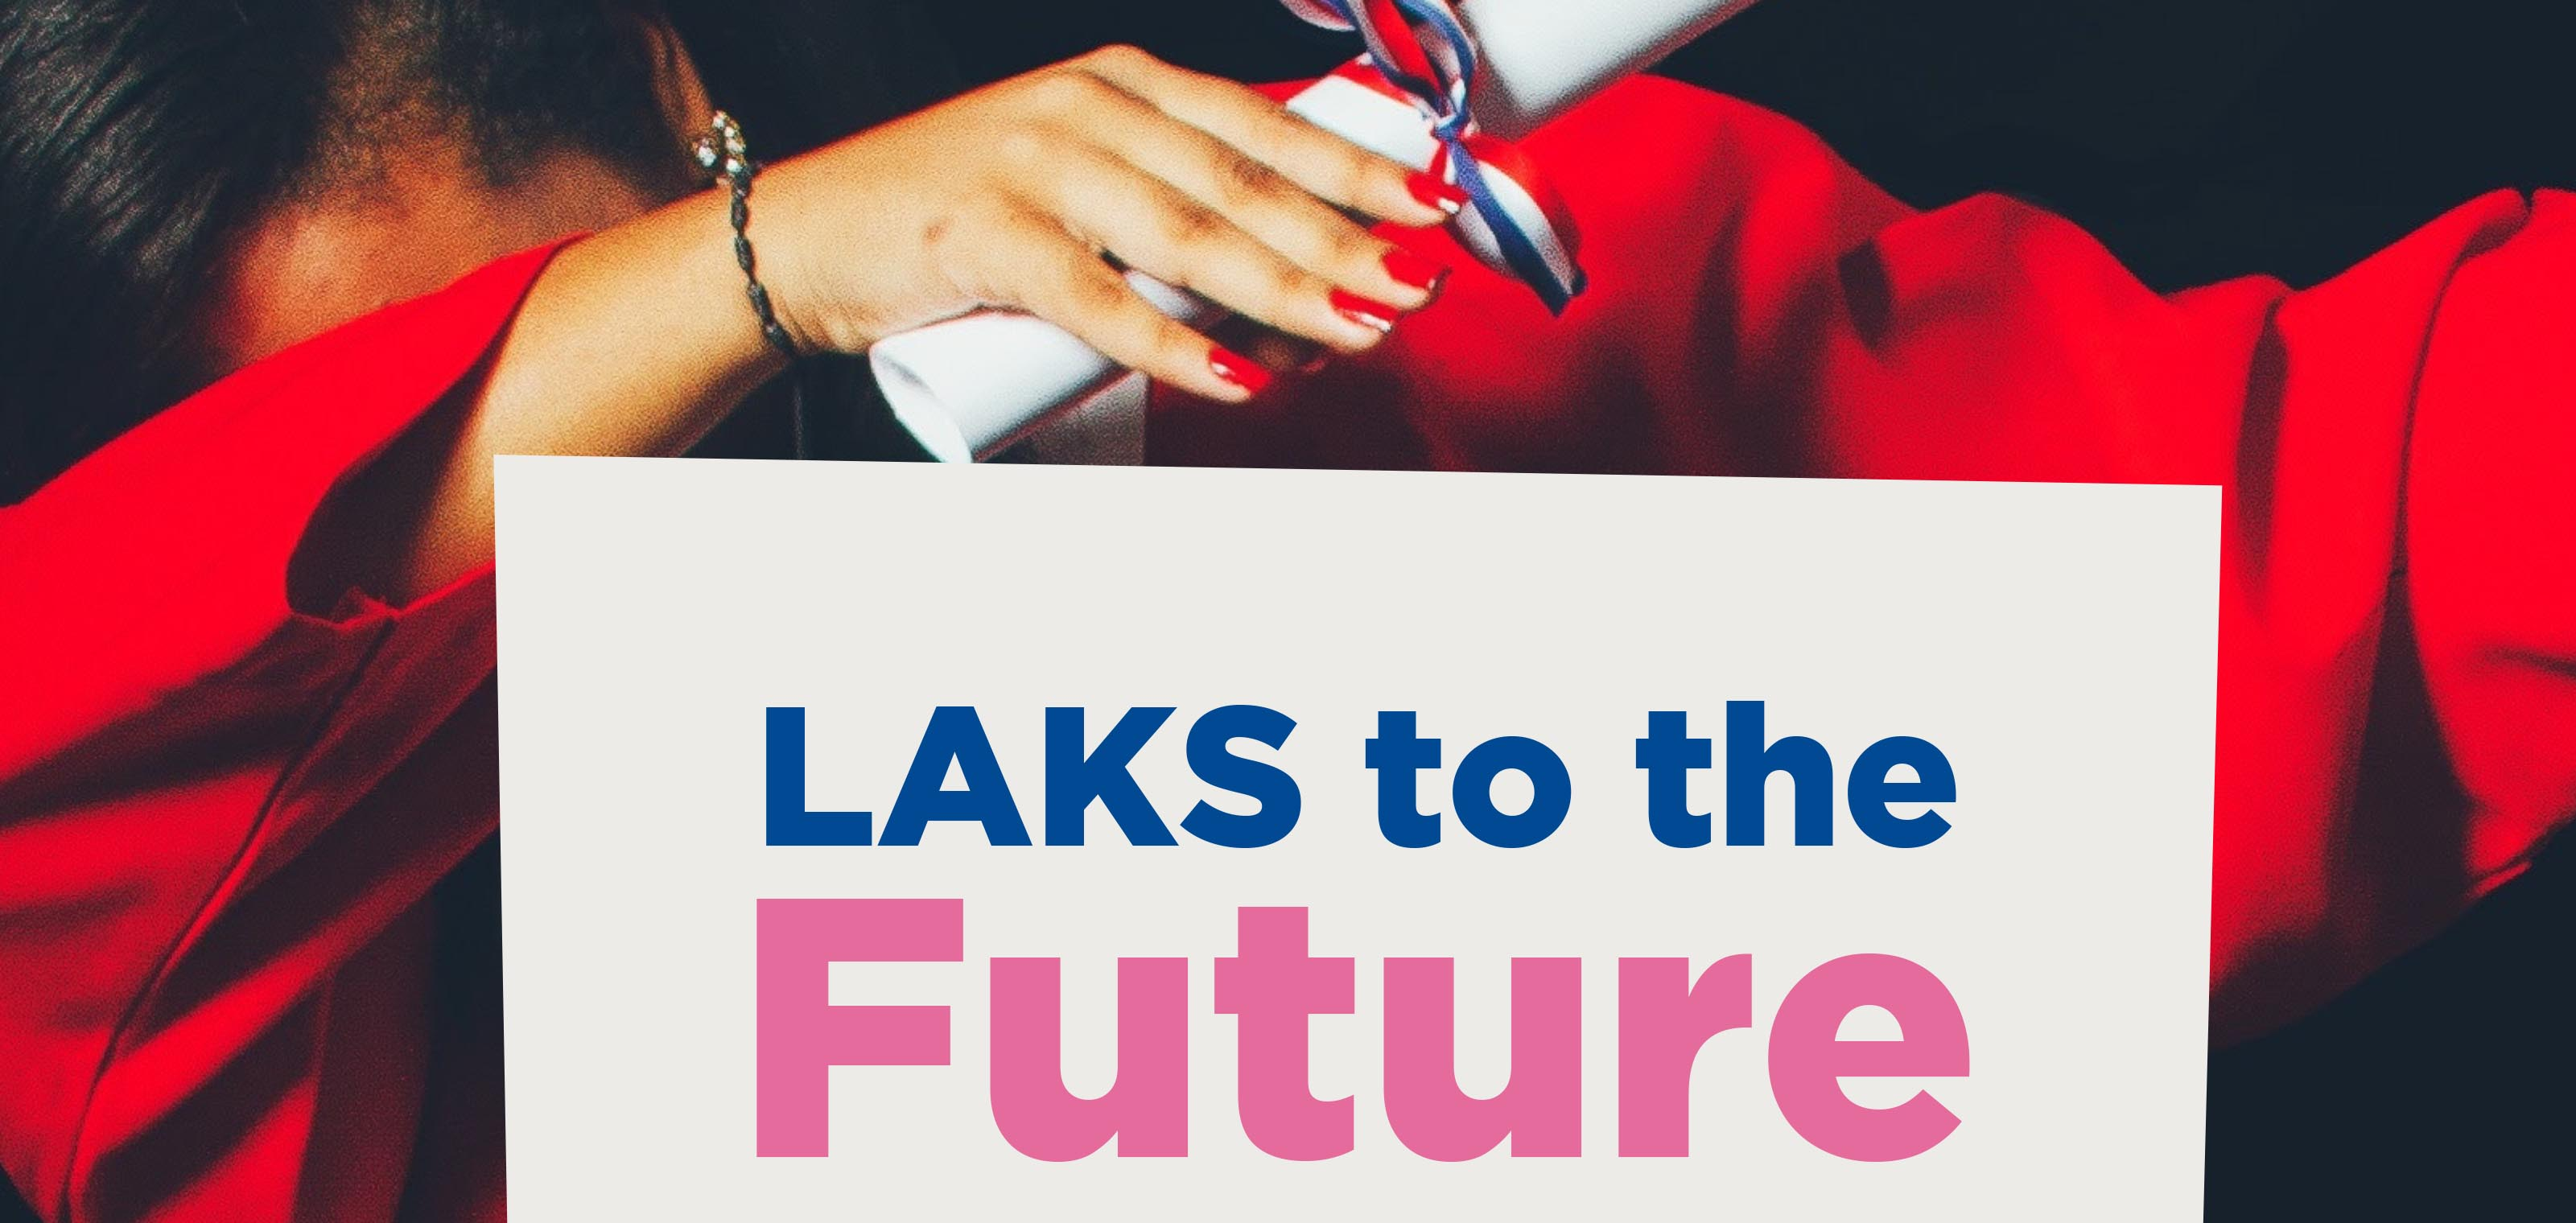 LAKS to the Future